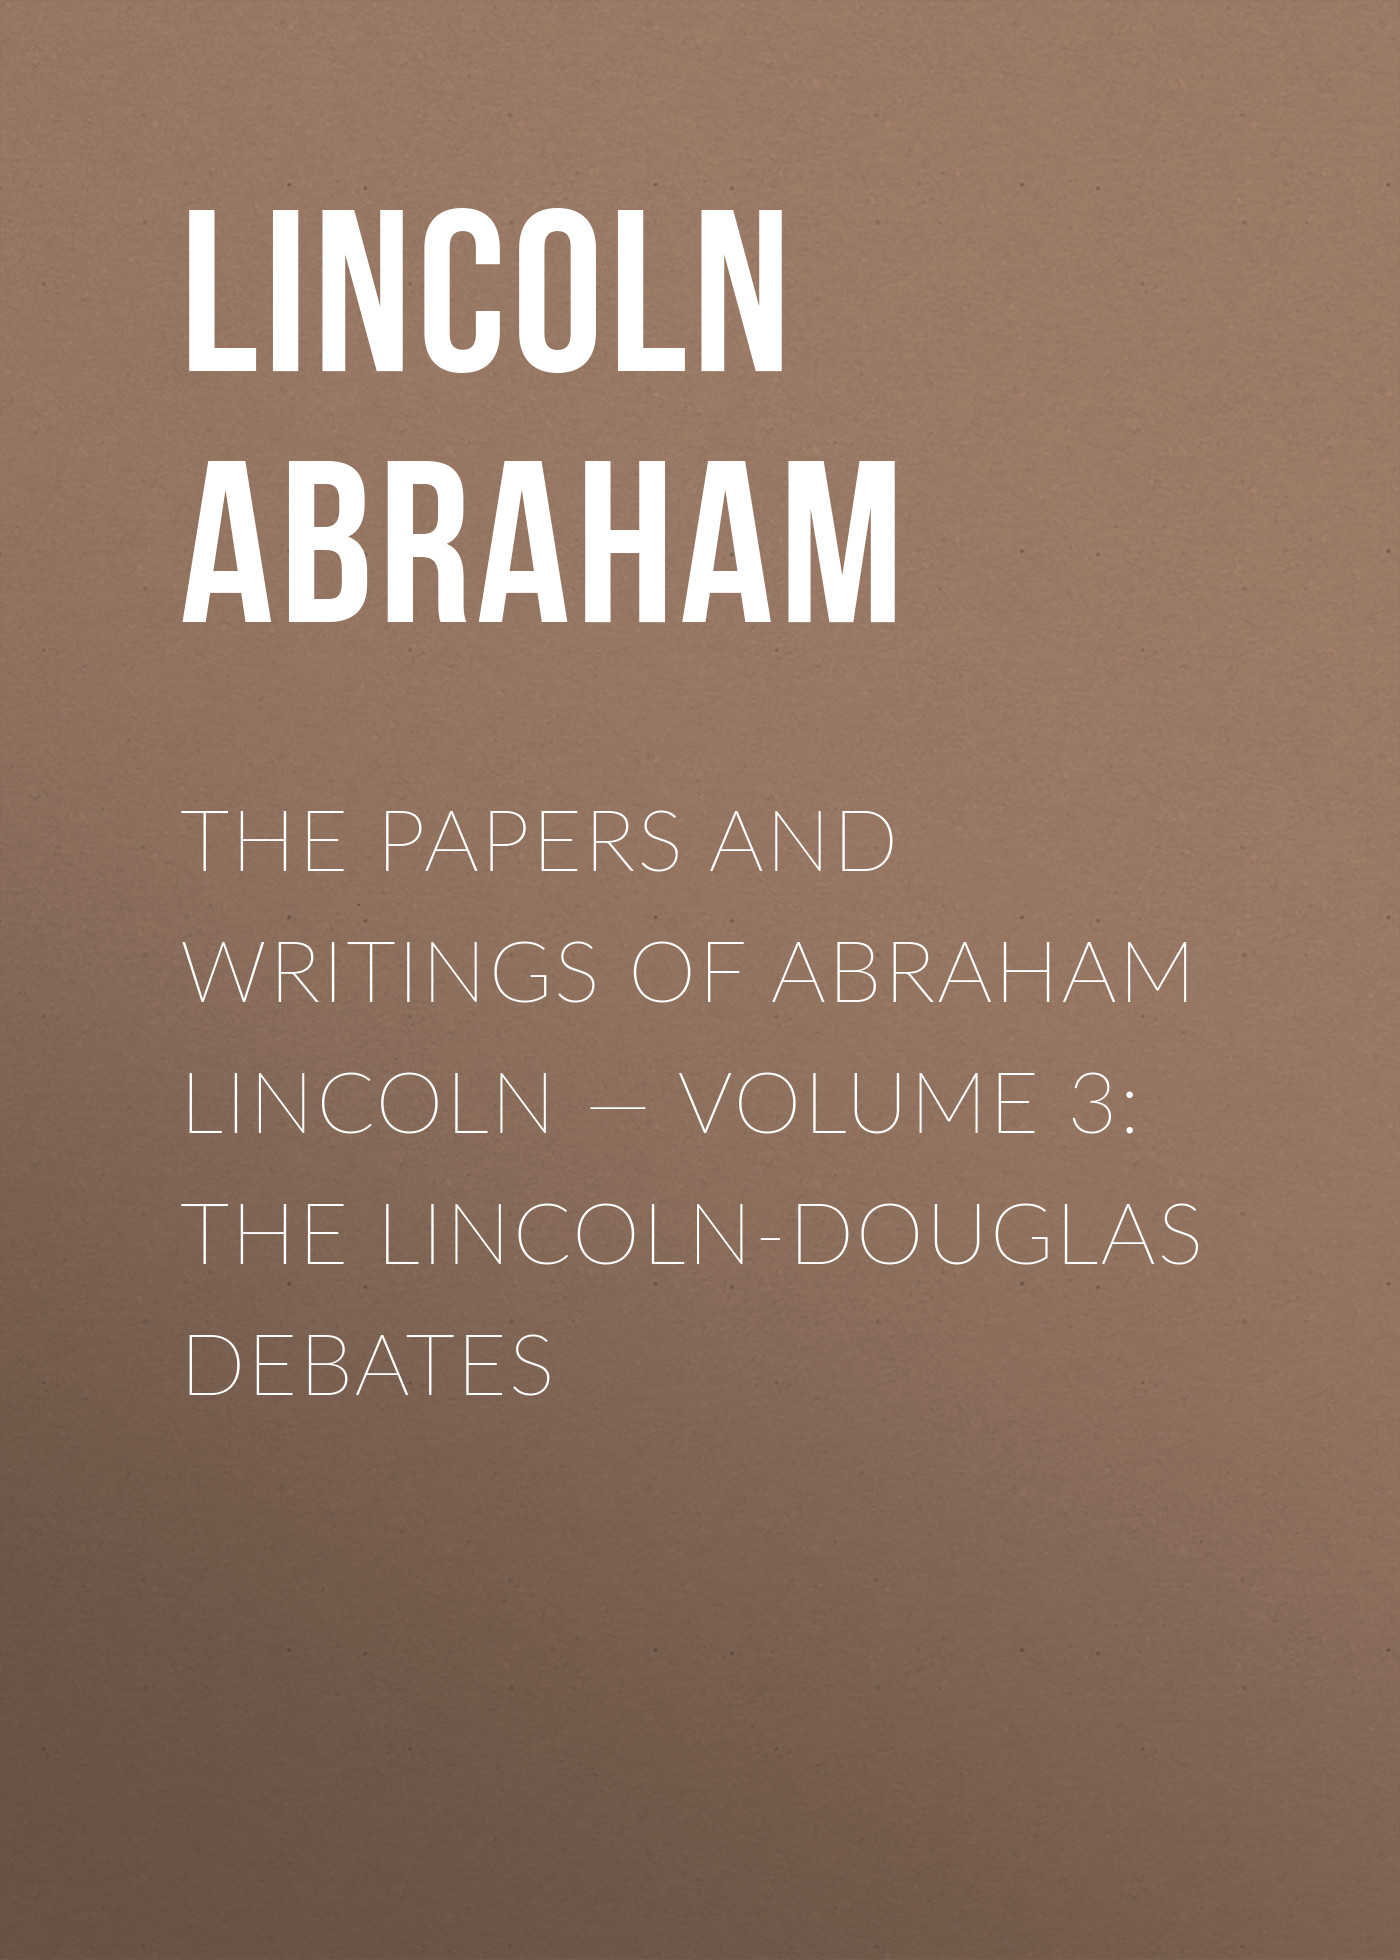 Lincoln Abraham The Papers And Writings Of Abraham Lincoln — Volume 3: The Lincoln-Douglas Debates grahame smith s abraham lincoln vampire hunter